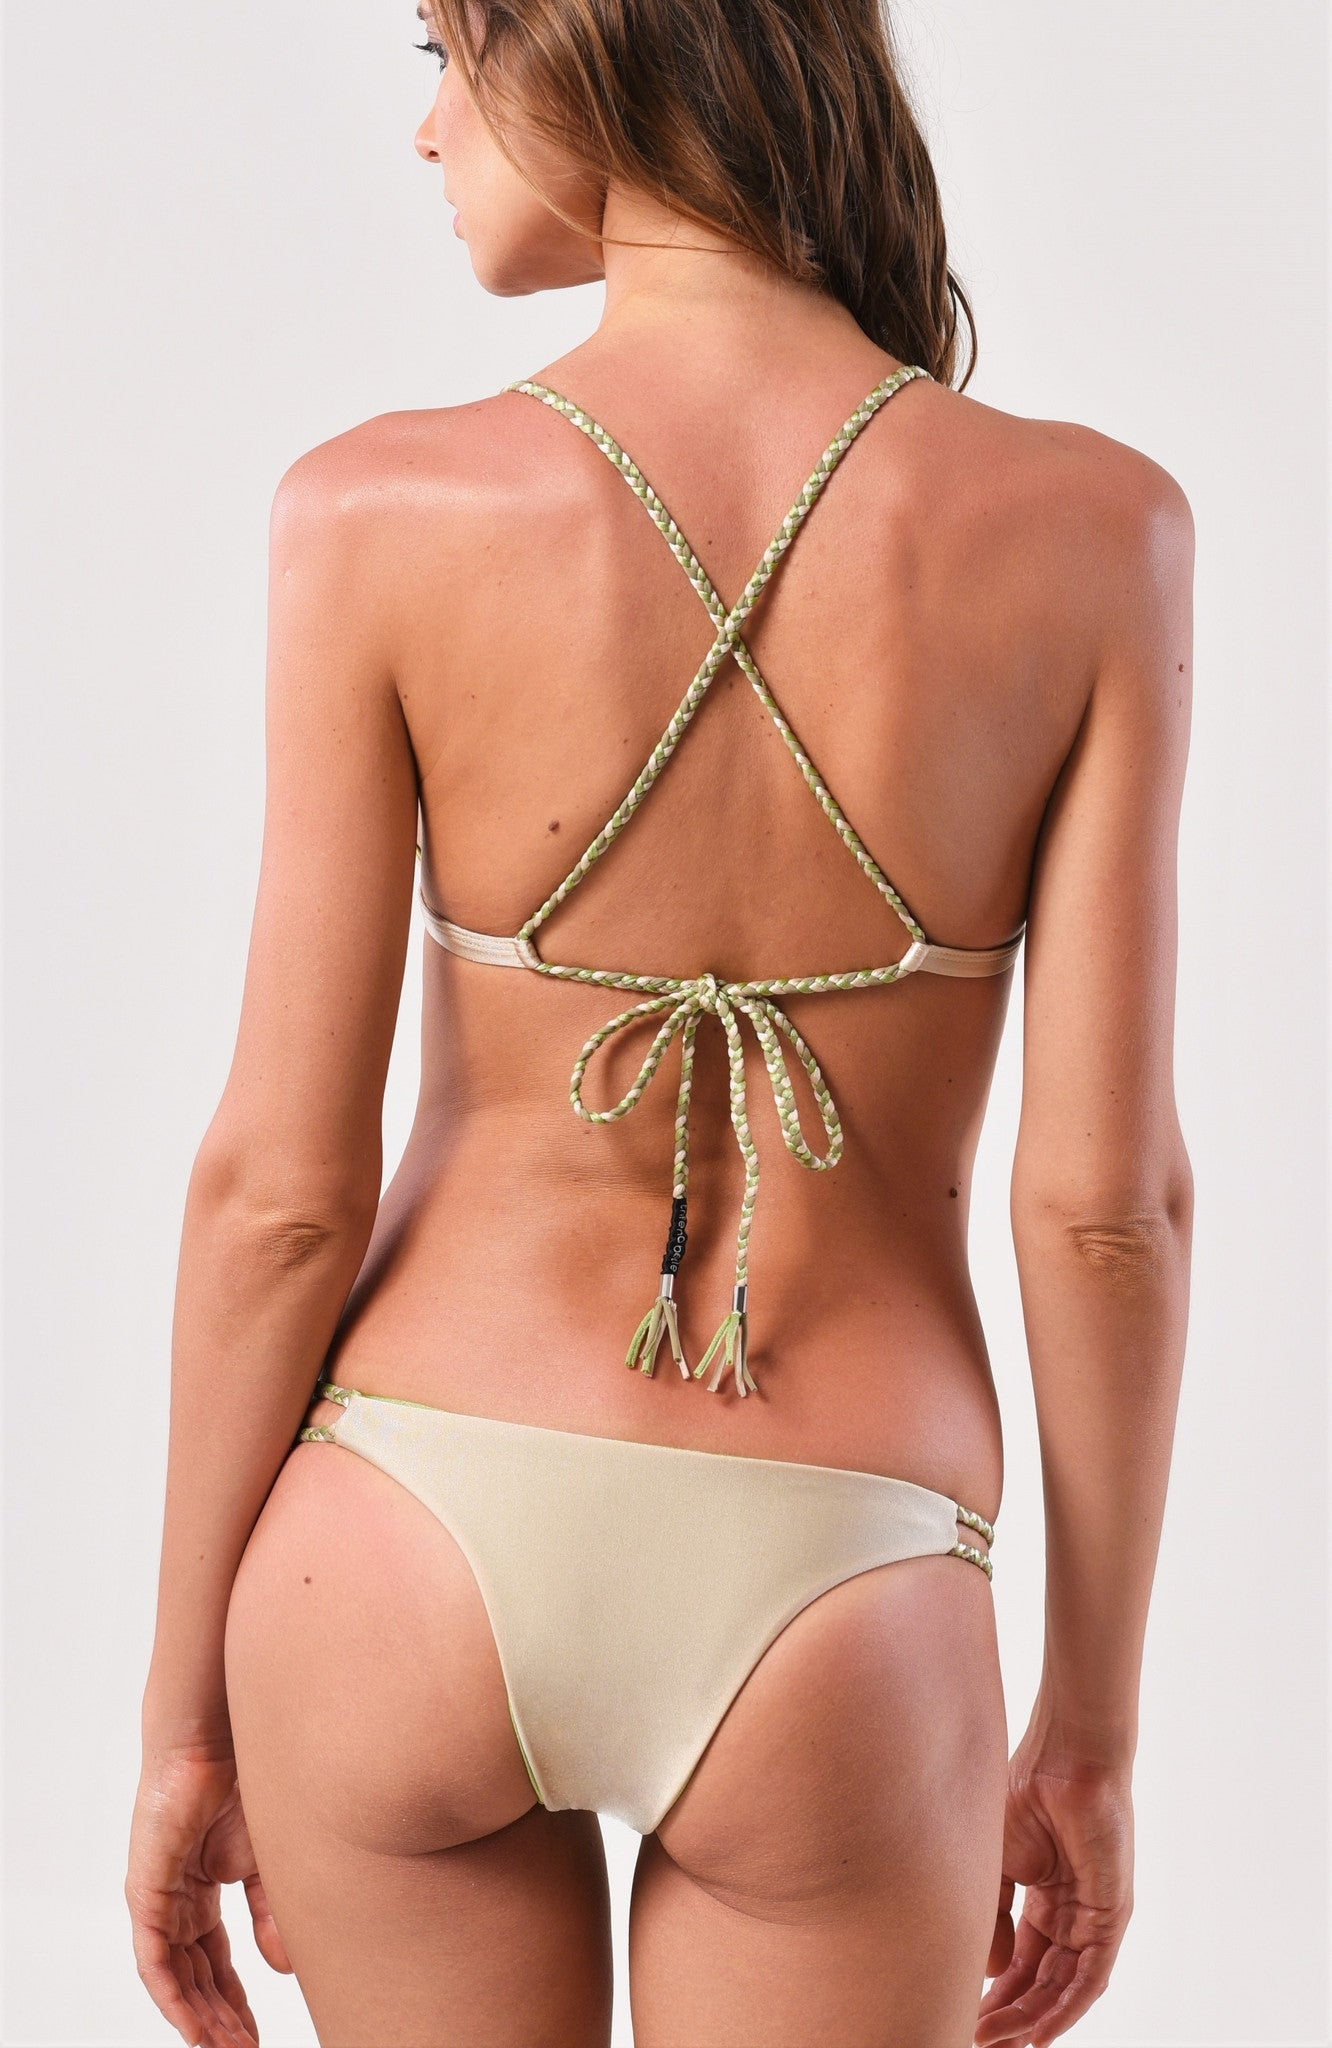 Nude/Pistachio Fixed Triangle Top x Cheeky Bottom